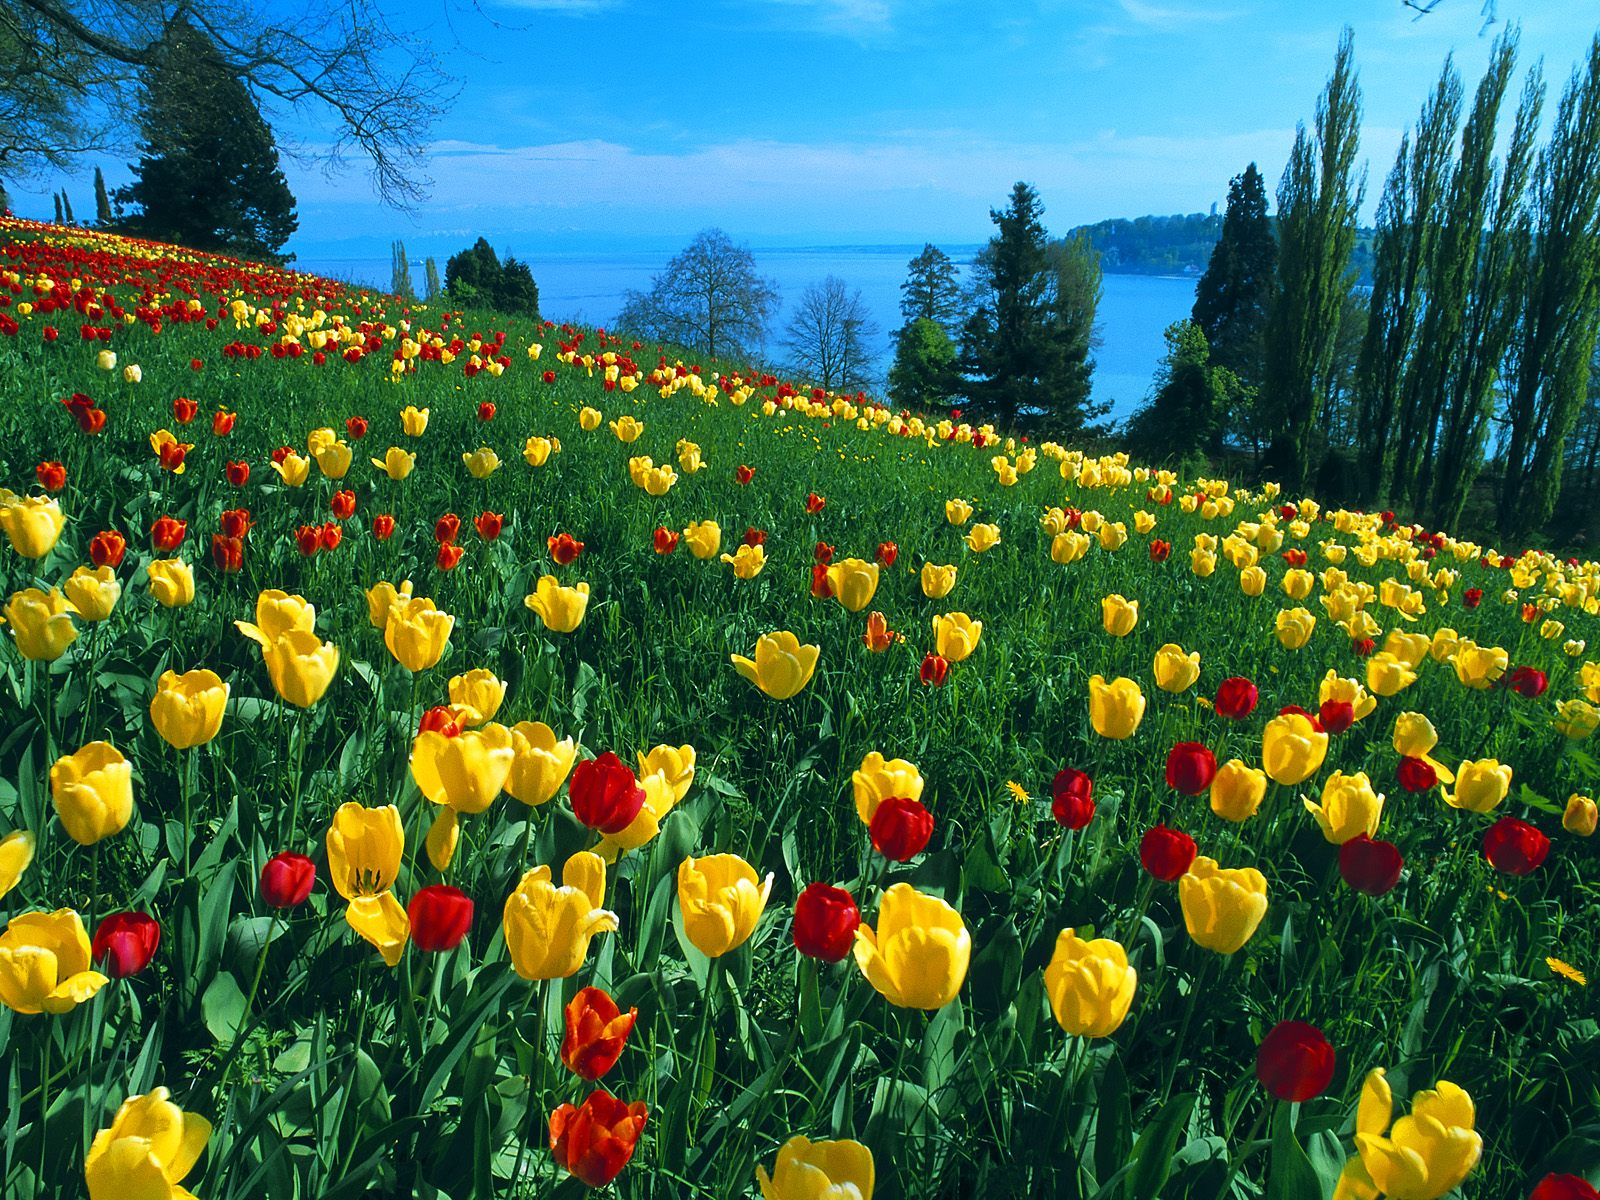 Of red and yellow tulips in spring 2011 free download wallpapers